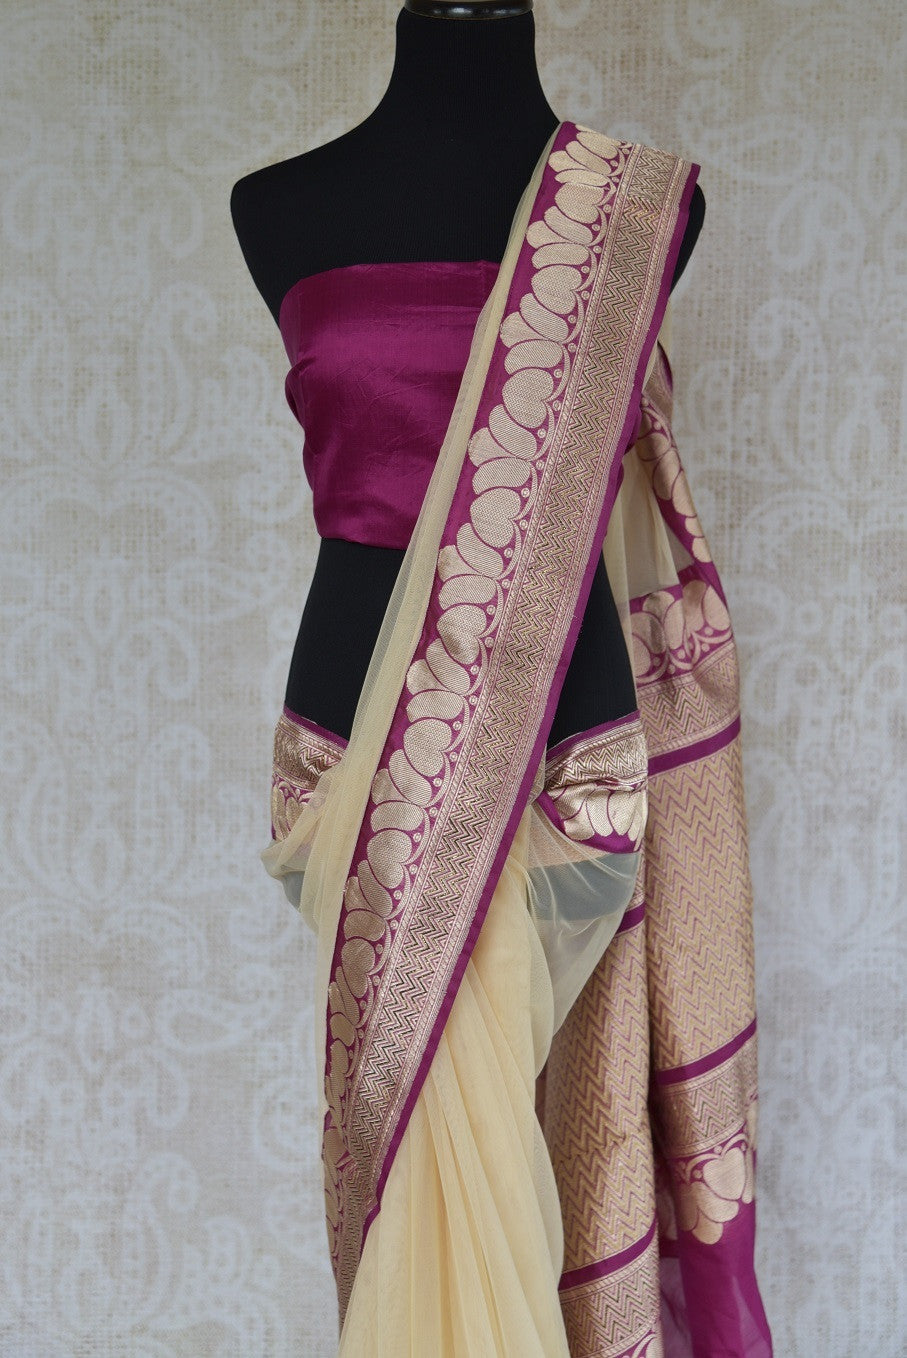 90C257 Net saree with a traditional Banarasi border. The cream and maroon saree from India can be bought at Pure Elegance - our Indian clothing store in USA. This elegant saree is sure to have you at the top of your ethnic style game.